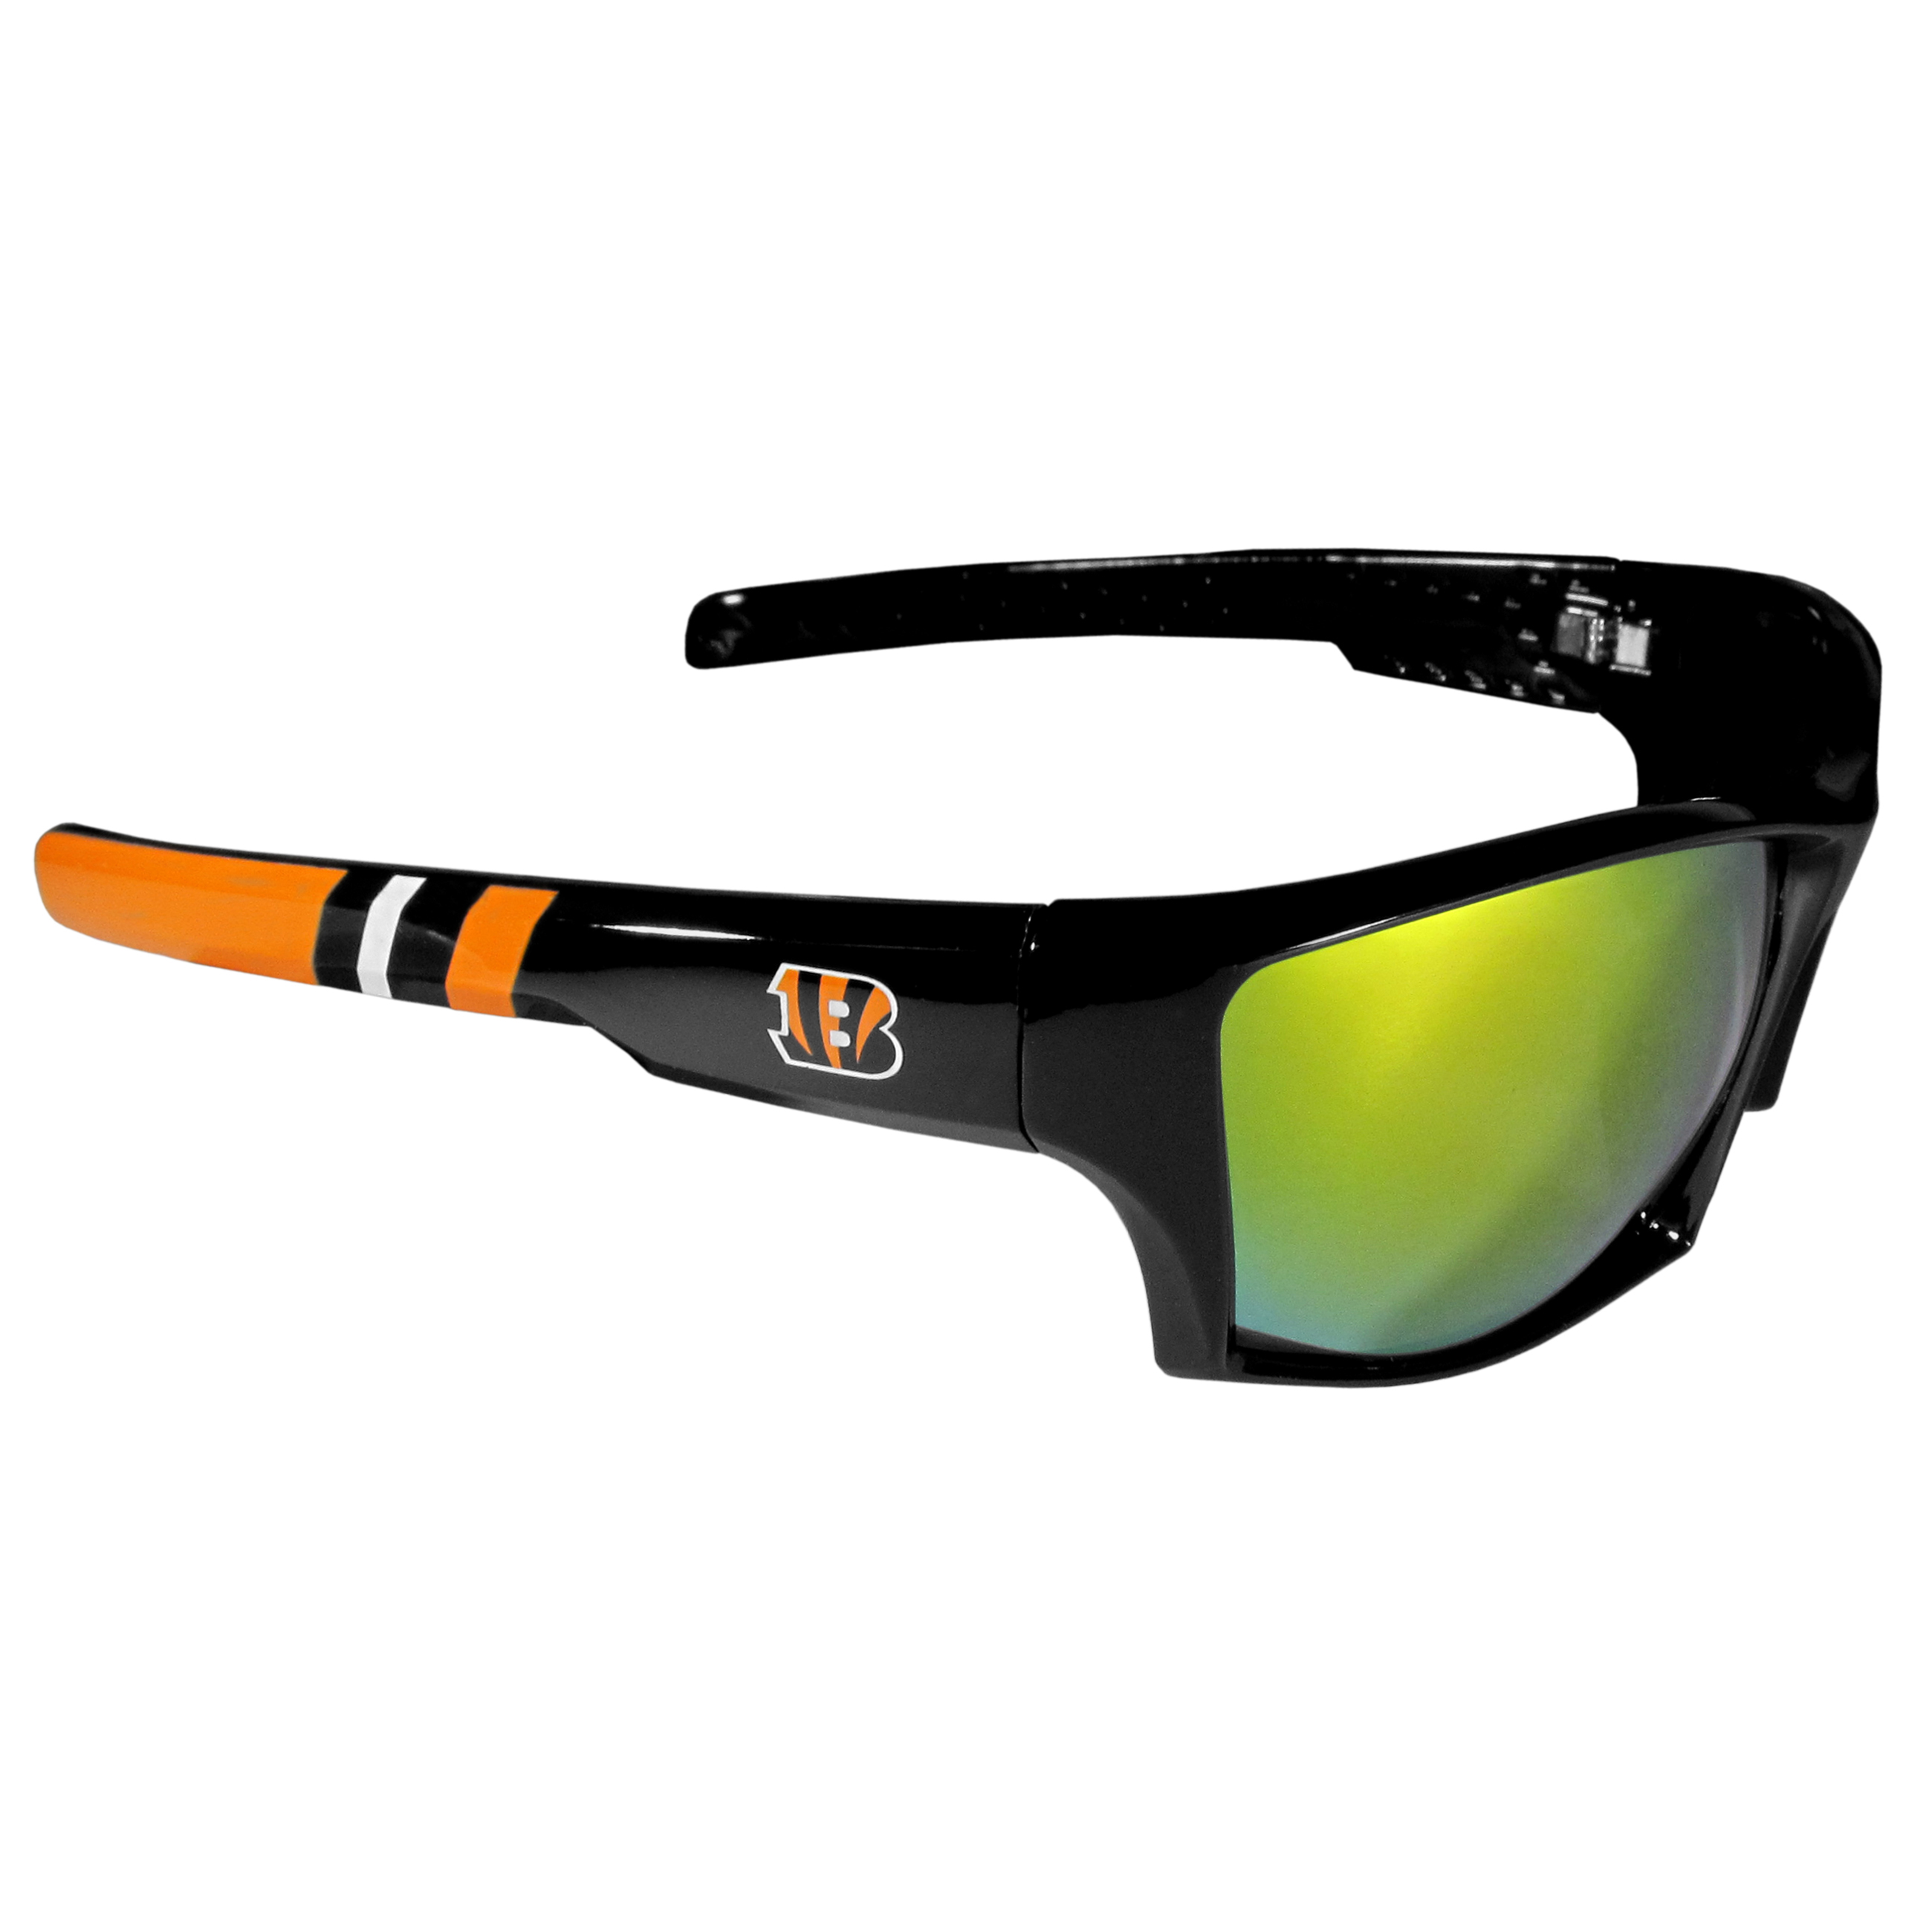 Cincinnati Bengals Edge Wrap Sunglasses - Be an icon of edgy style while you're in the stadium cheering your Cincinnati Bengals to victory with our polarized wrap sunglasses that feature 100% UVA/UVB rating for maximum UV protection. The light-weight frames are built to last with flex hinges for comfort and durability which make them perfect for driving or just lounging by the pool. The colorful rubber grips on the arms of these fashionable sunglasses make them perfect for someone with an active lifestyle. Whether you are hiking, fishing, boating, running on the beach, golfing or playing your favorite sport these designer frames will set you apart. Our edge wrap sunglasses are true quality eyewear at an affordable price. The wrap style frames come with team colored stripes and team logos so you can show off your die-hard team pride while protecting your eyes from those bright sun rays.